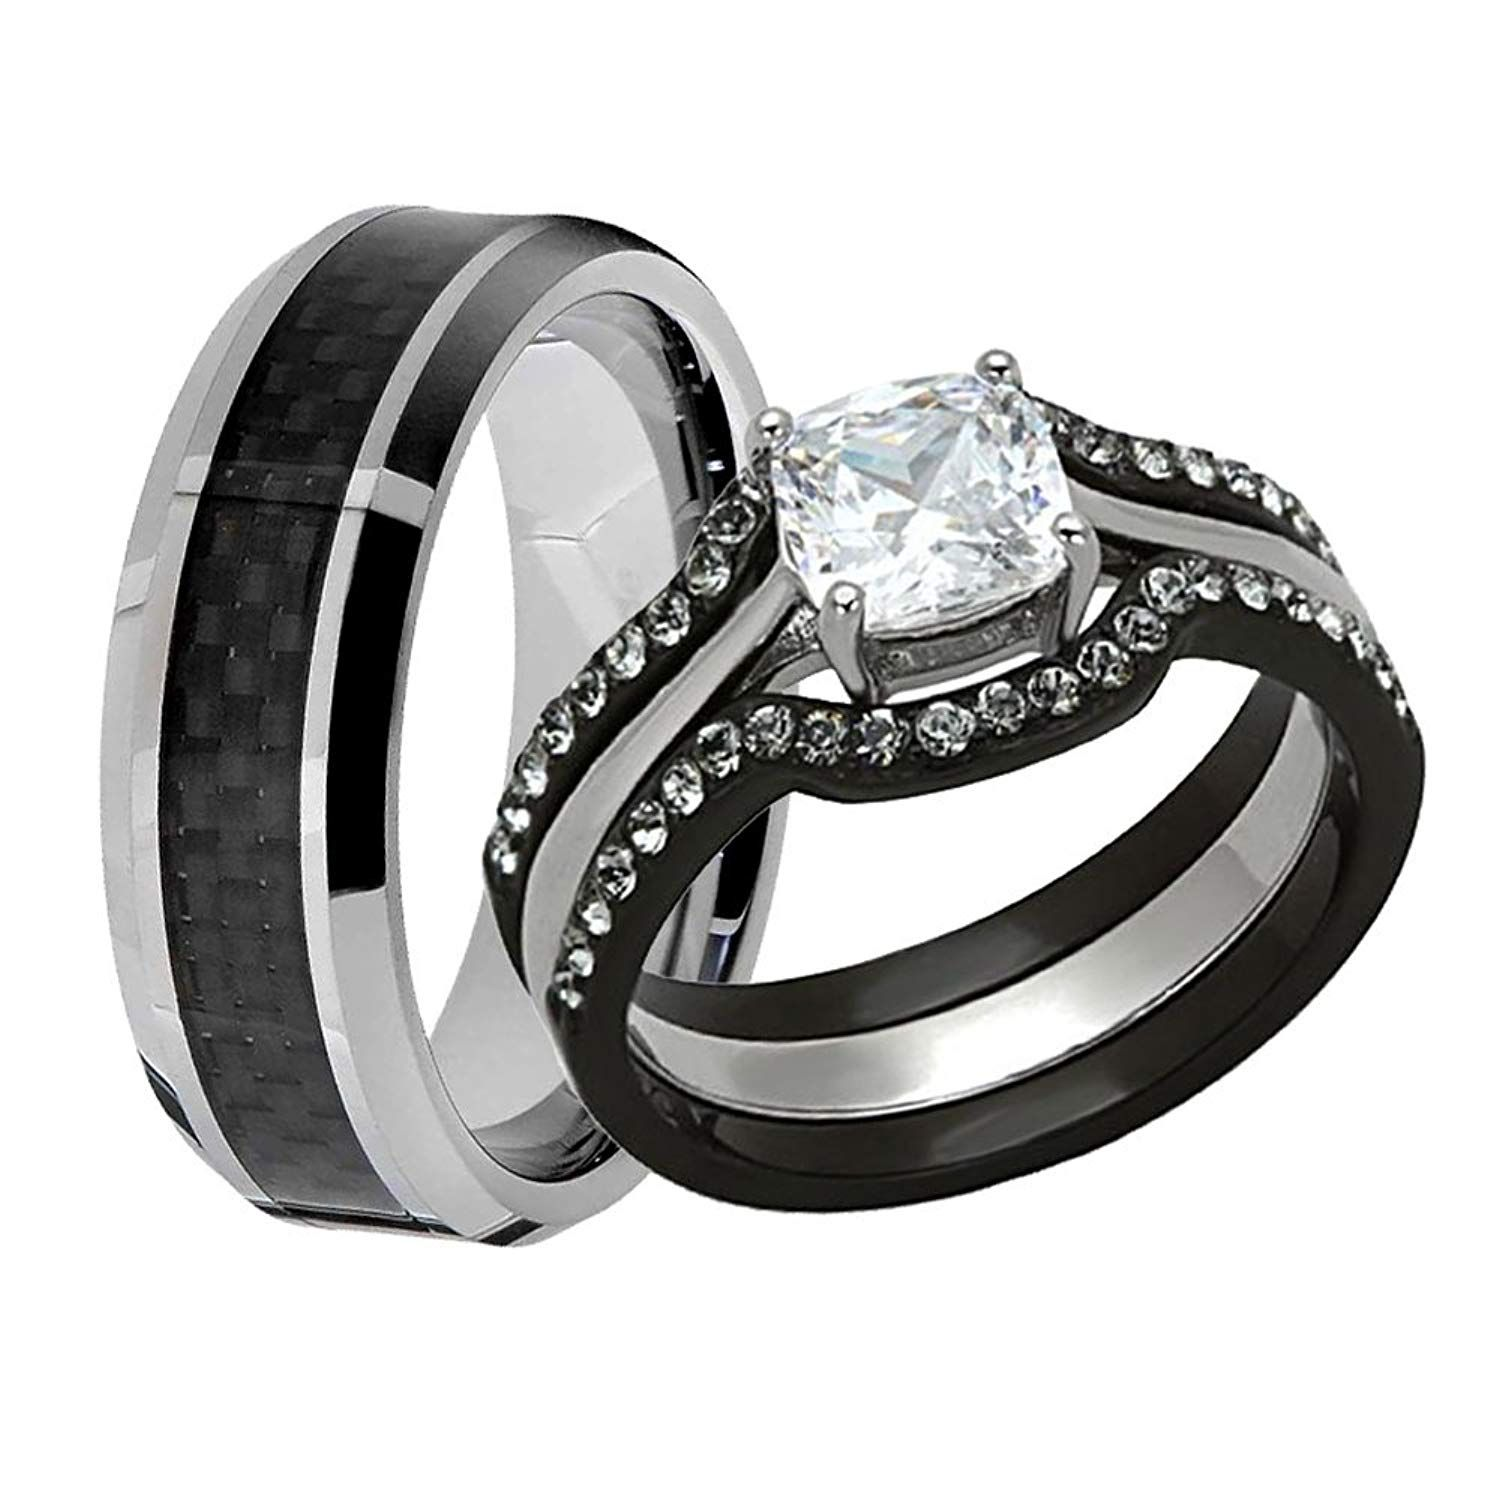 Flamereflection His And Hers Stainless Steel Cushion Cz Wedding Ring Set Tungsten Wedding Band In 2020 Wedding Ring Cushion Cz Wedding Ring Sets Tungsten Wedding Rings